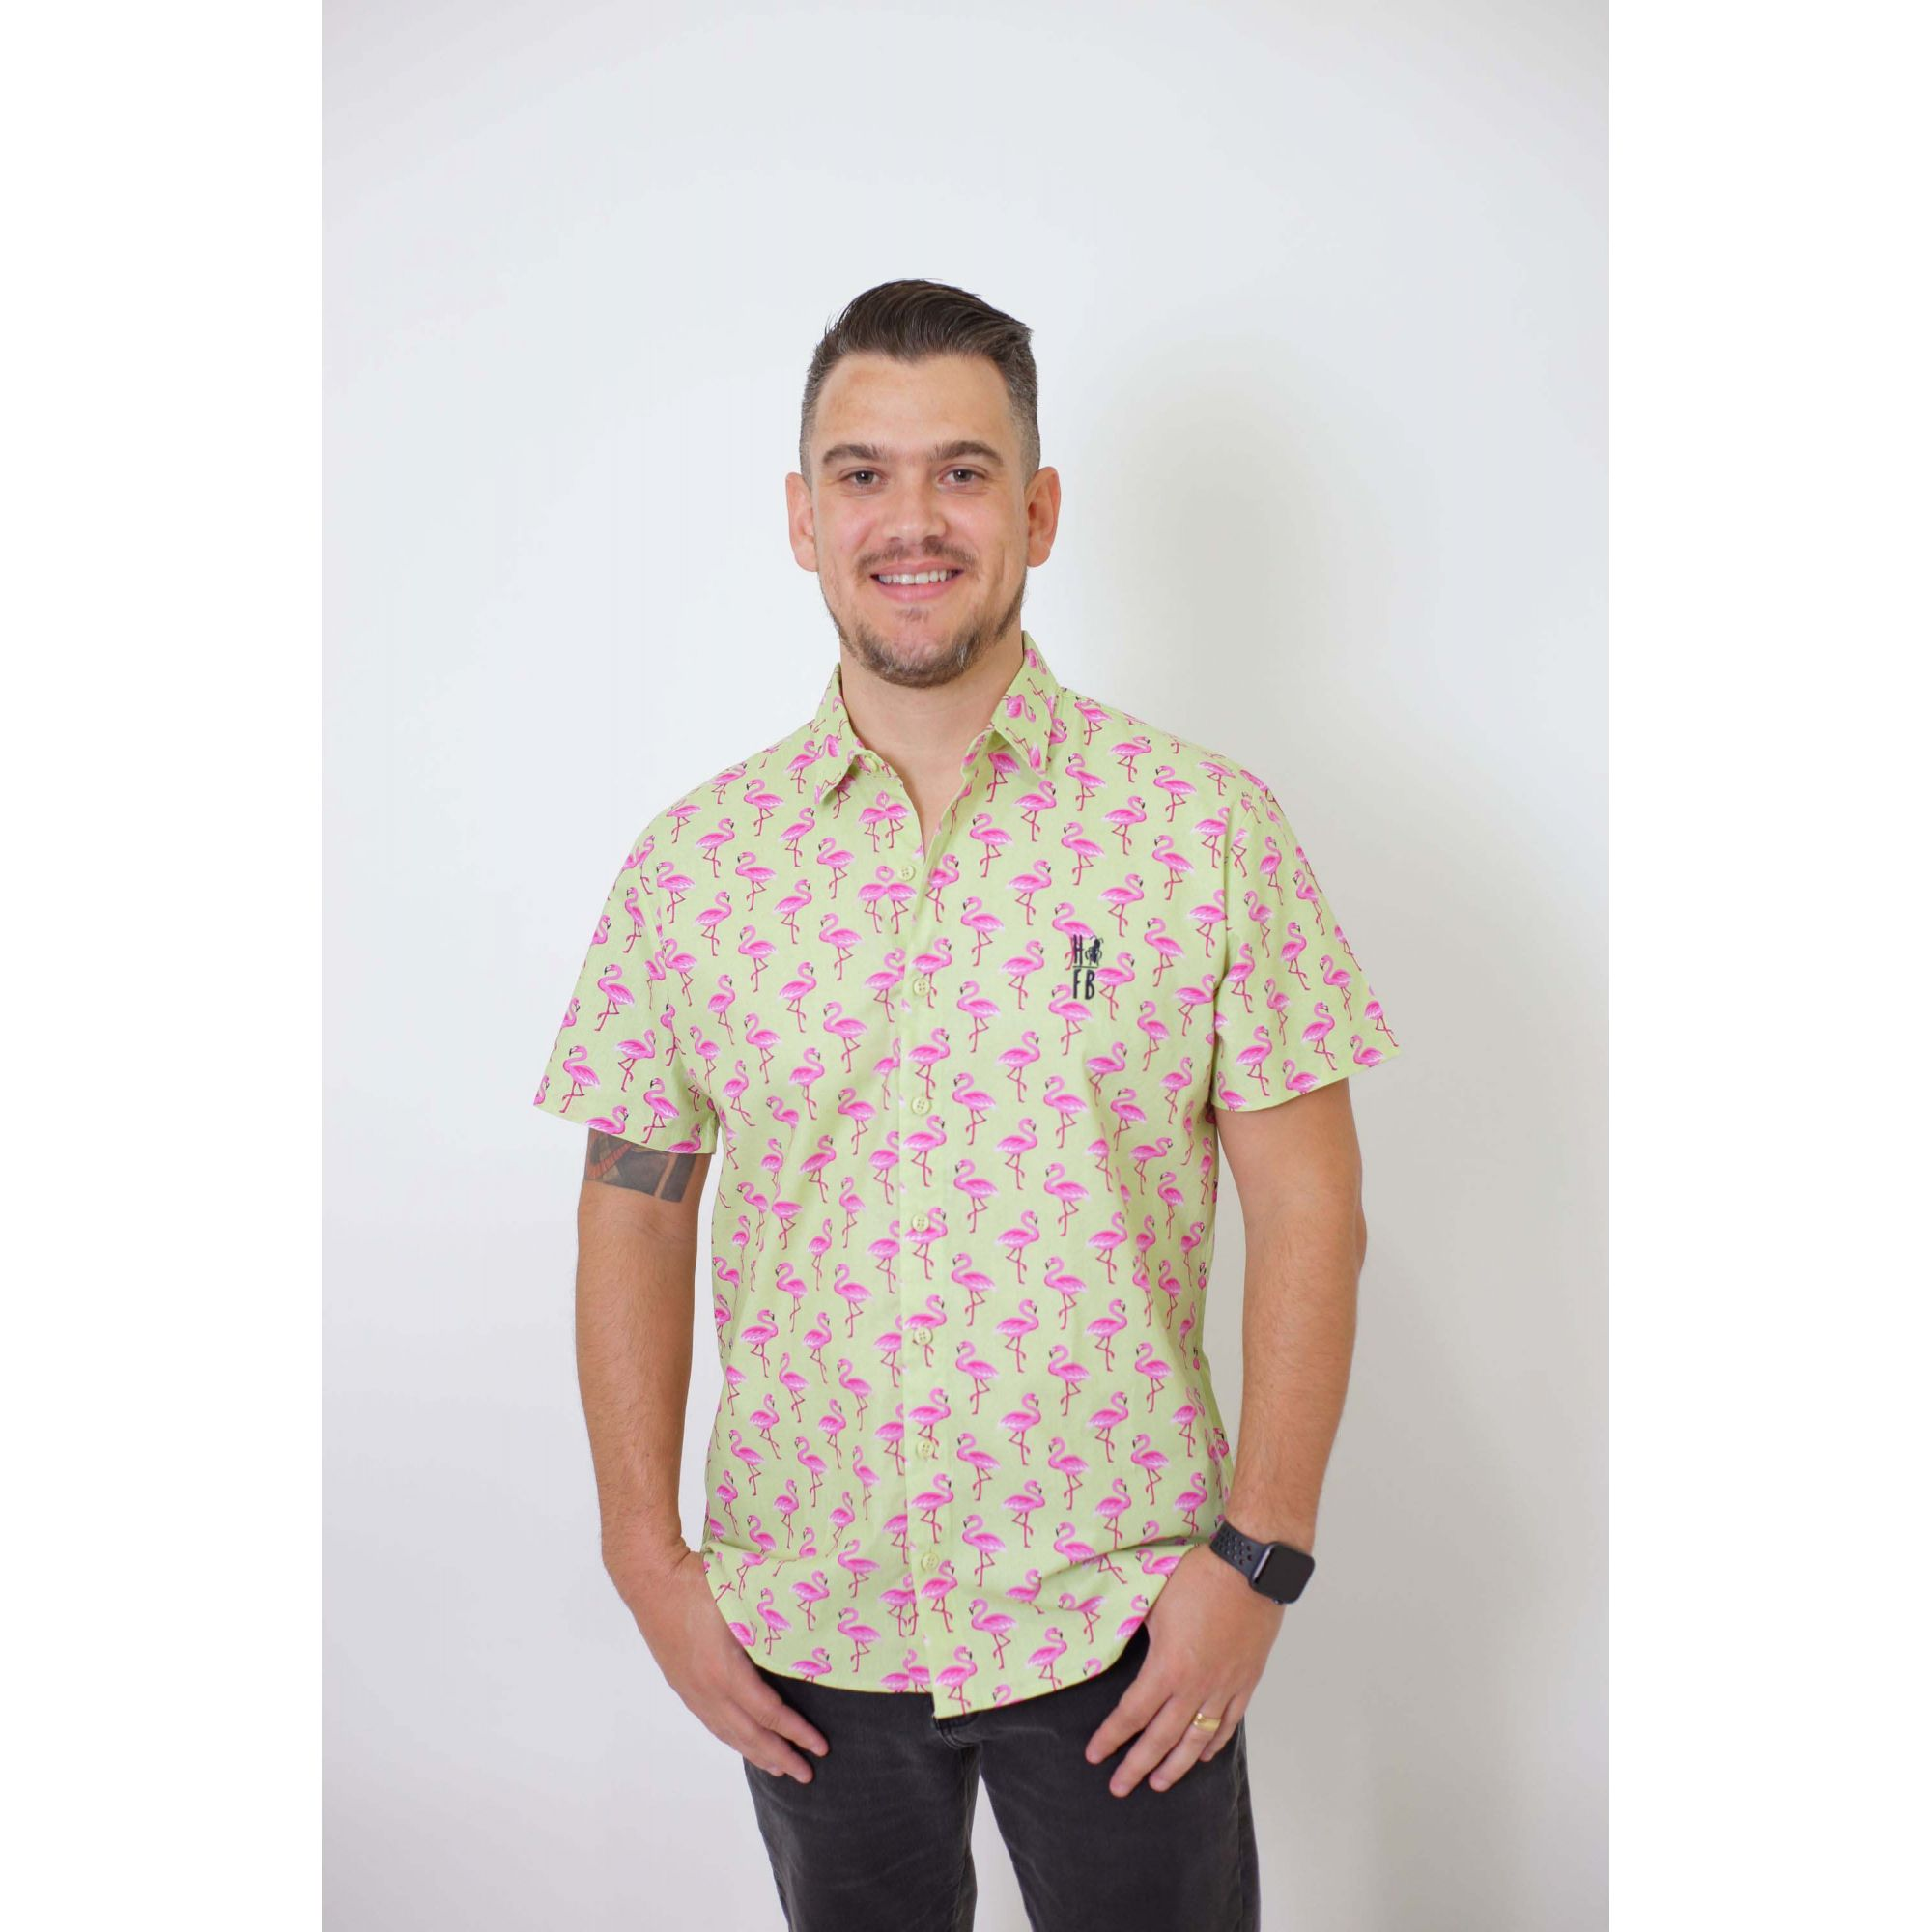 Camisa Social Manga Curta Flamingo Adulta  - Heitor Fashion Brazil